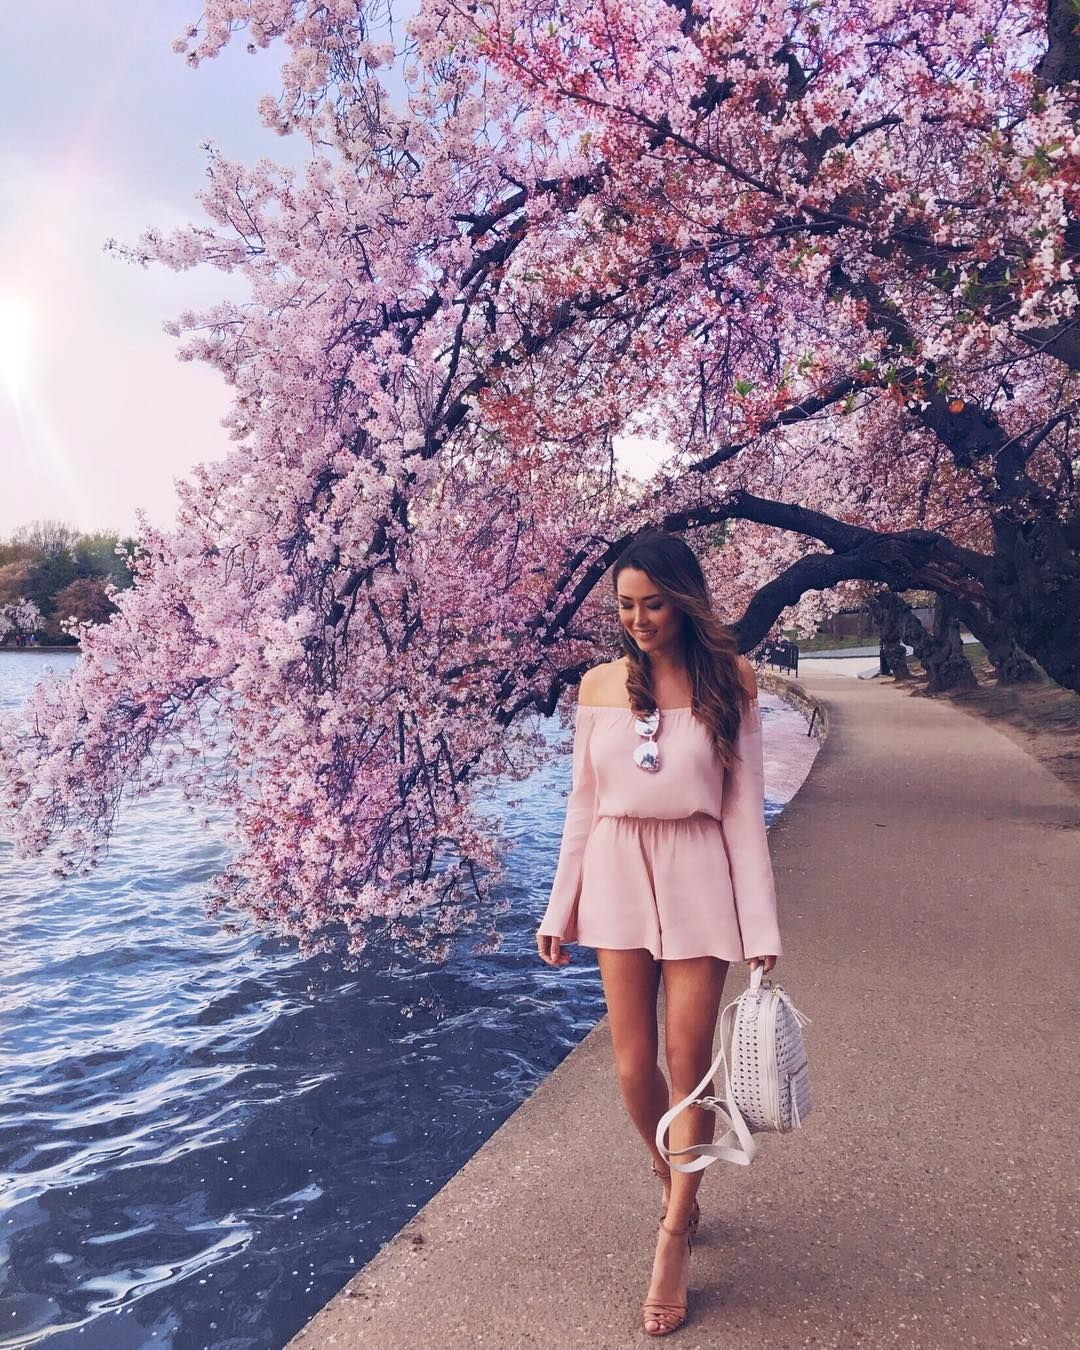 25 5k Likes 205 Comments Jessica Ricks Hapatime On Instagram The Sun Came Out To Play T Cherry Blossom Outfit Jessica Ricks Fashion Blogger Photography